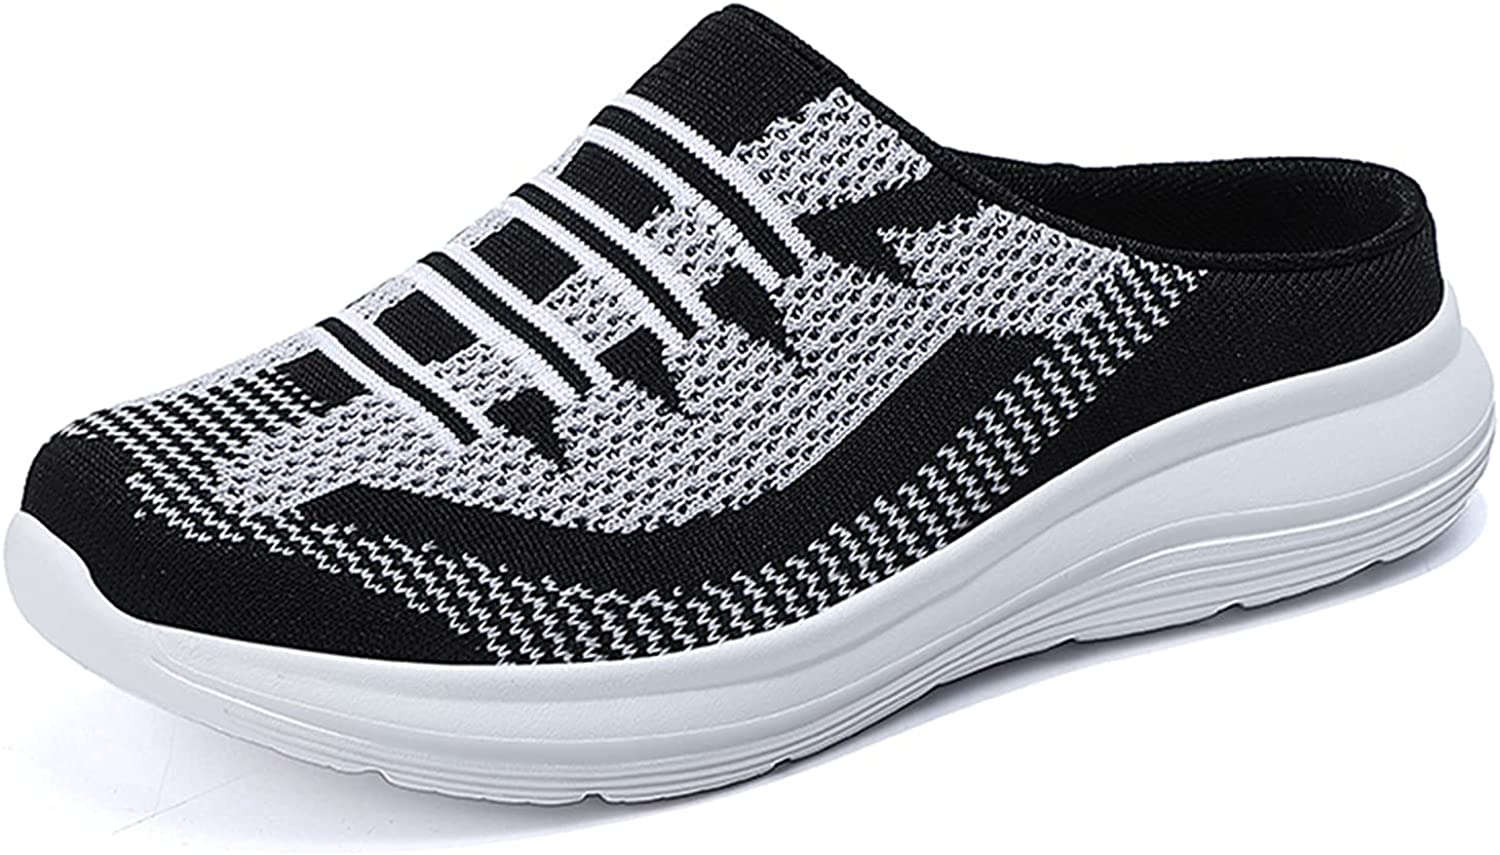 USYFAKGH Sneakers for Women Arch Support Comfort Walking Lightweight Running Shoes